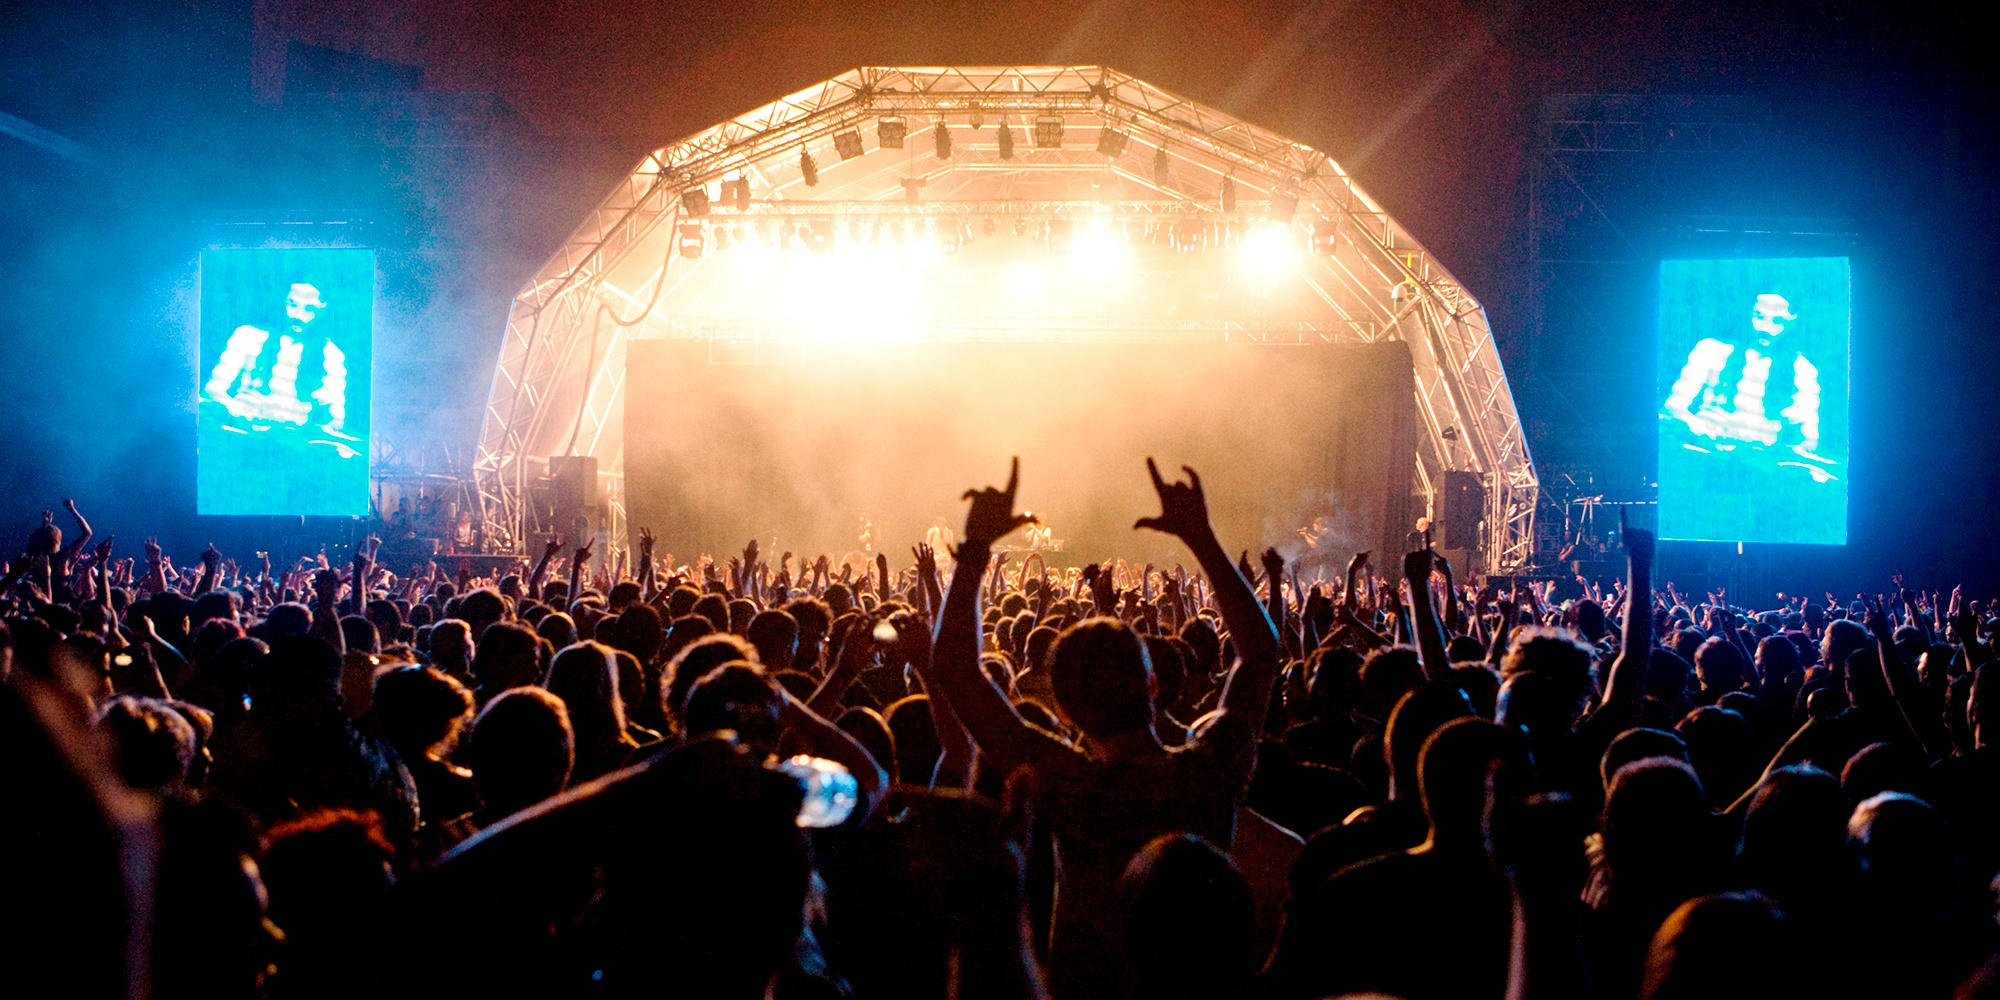 Electronic music festival Sónar to launch first Asian edition